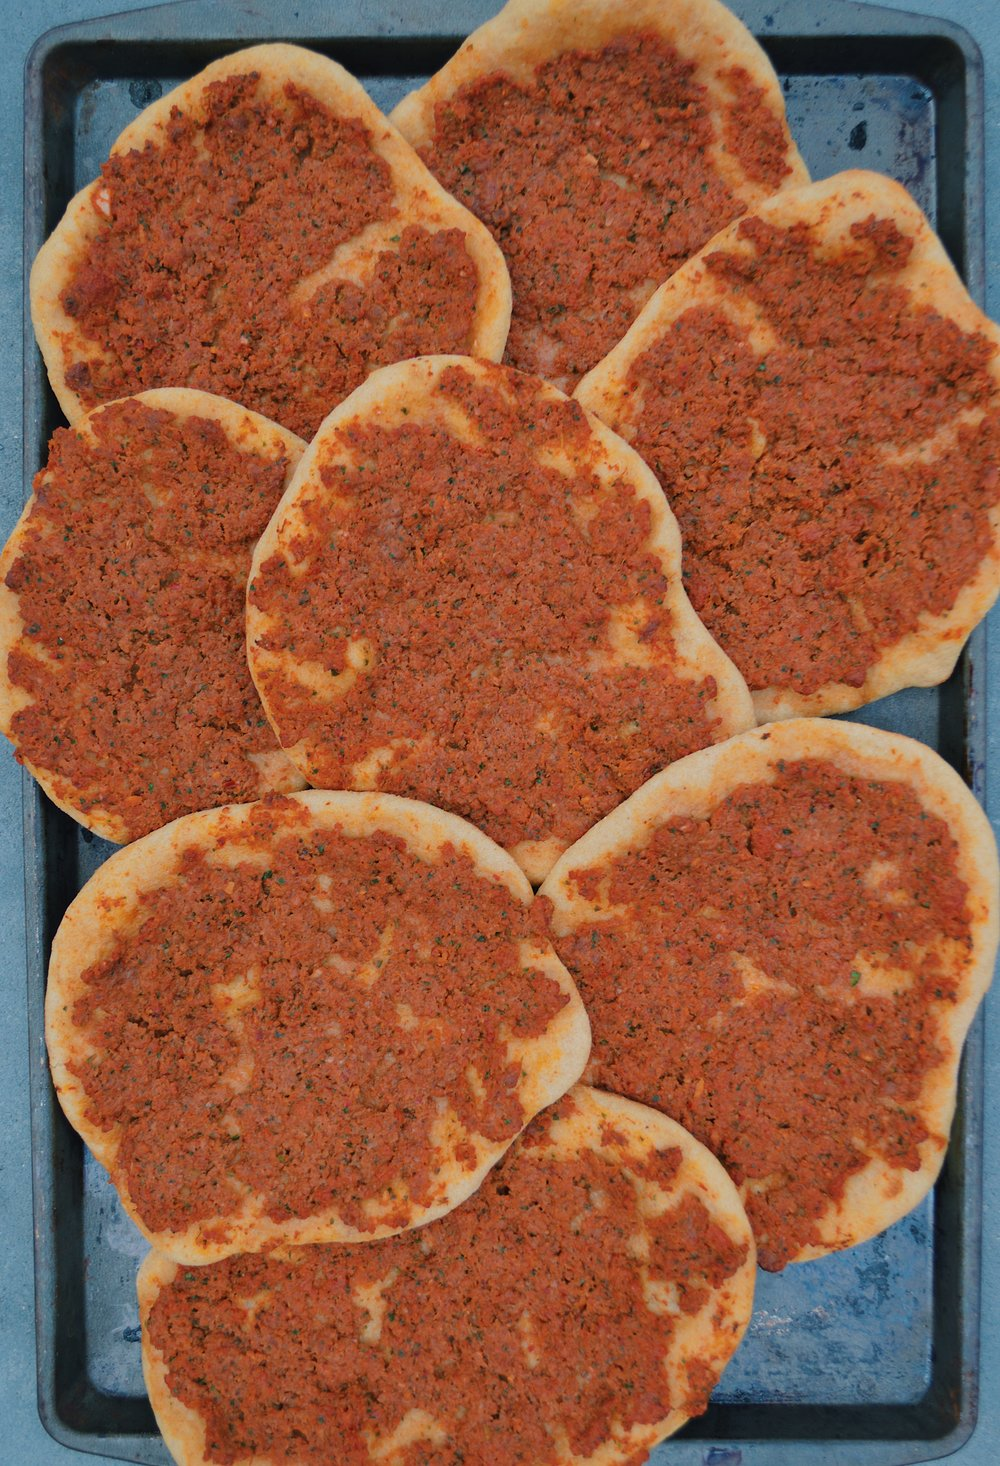 Lahmacun using homemade dough- tastes just as good but does not come out as thin as I would like it to be.